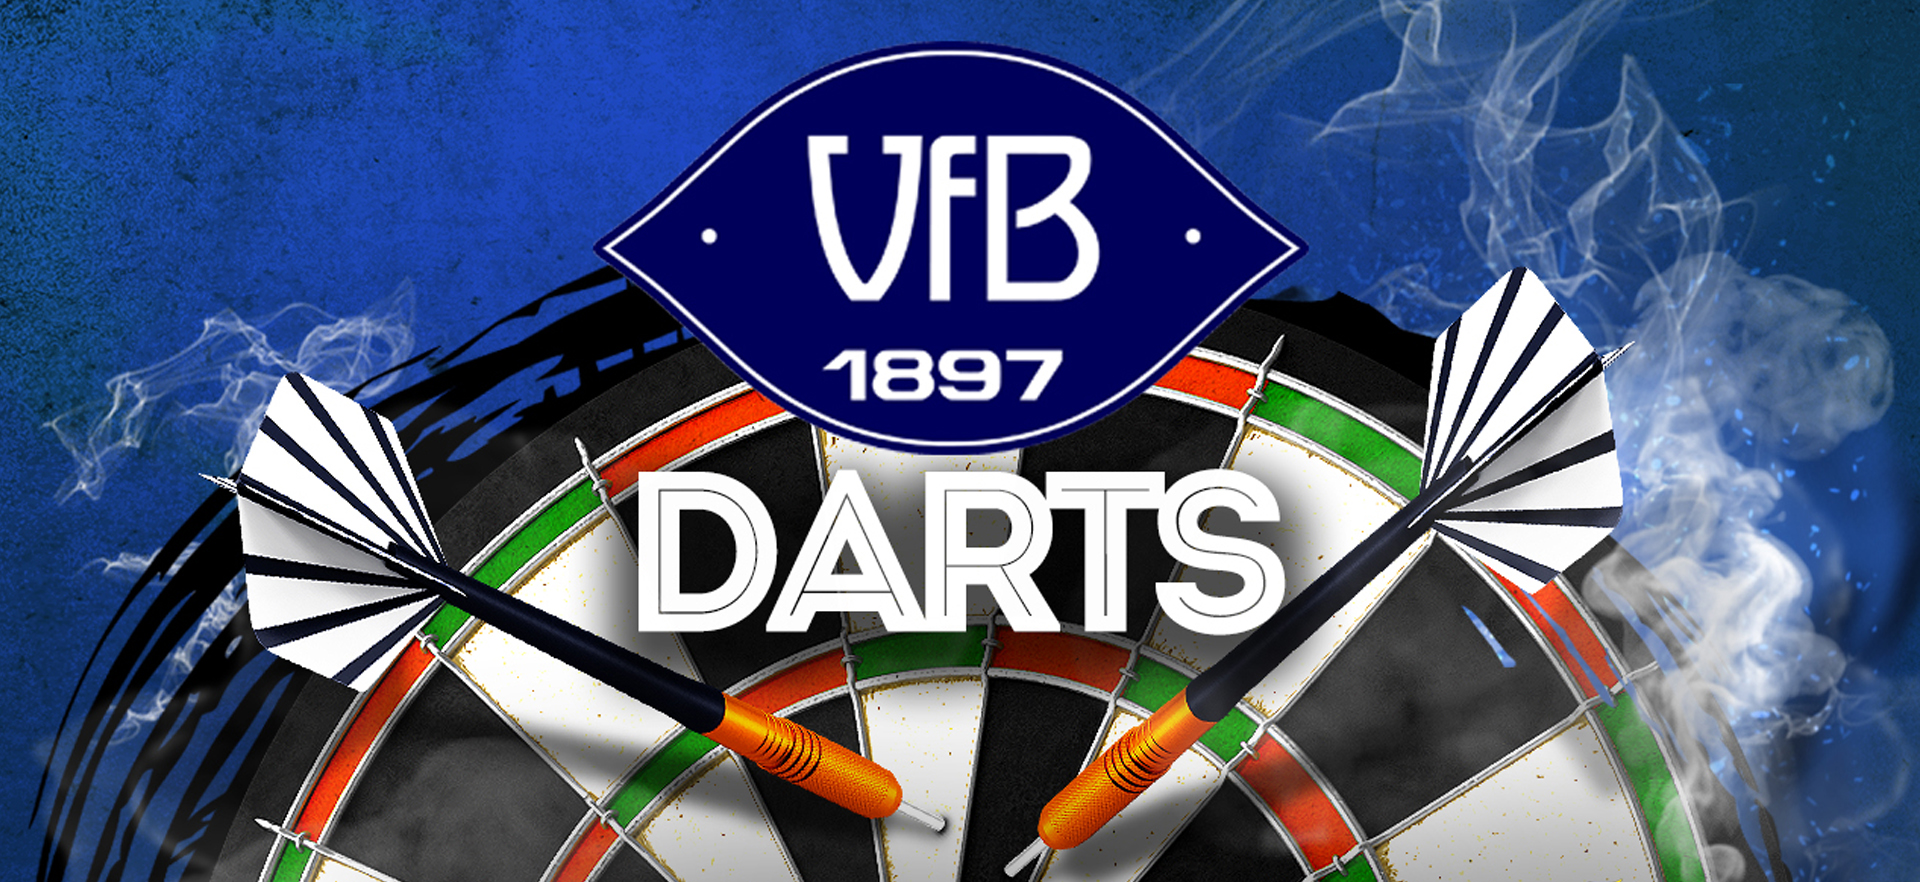 https://vfb-oldenburg.de/wp-content/uploads/darts-bild.jpg